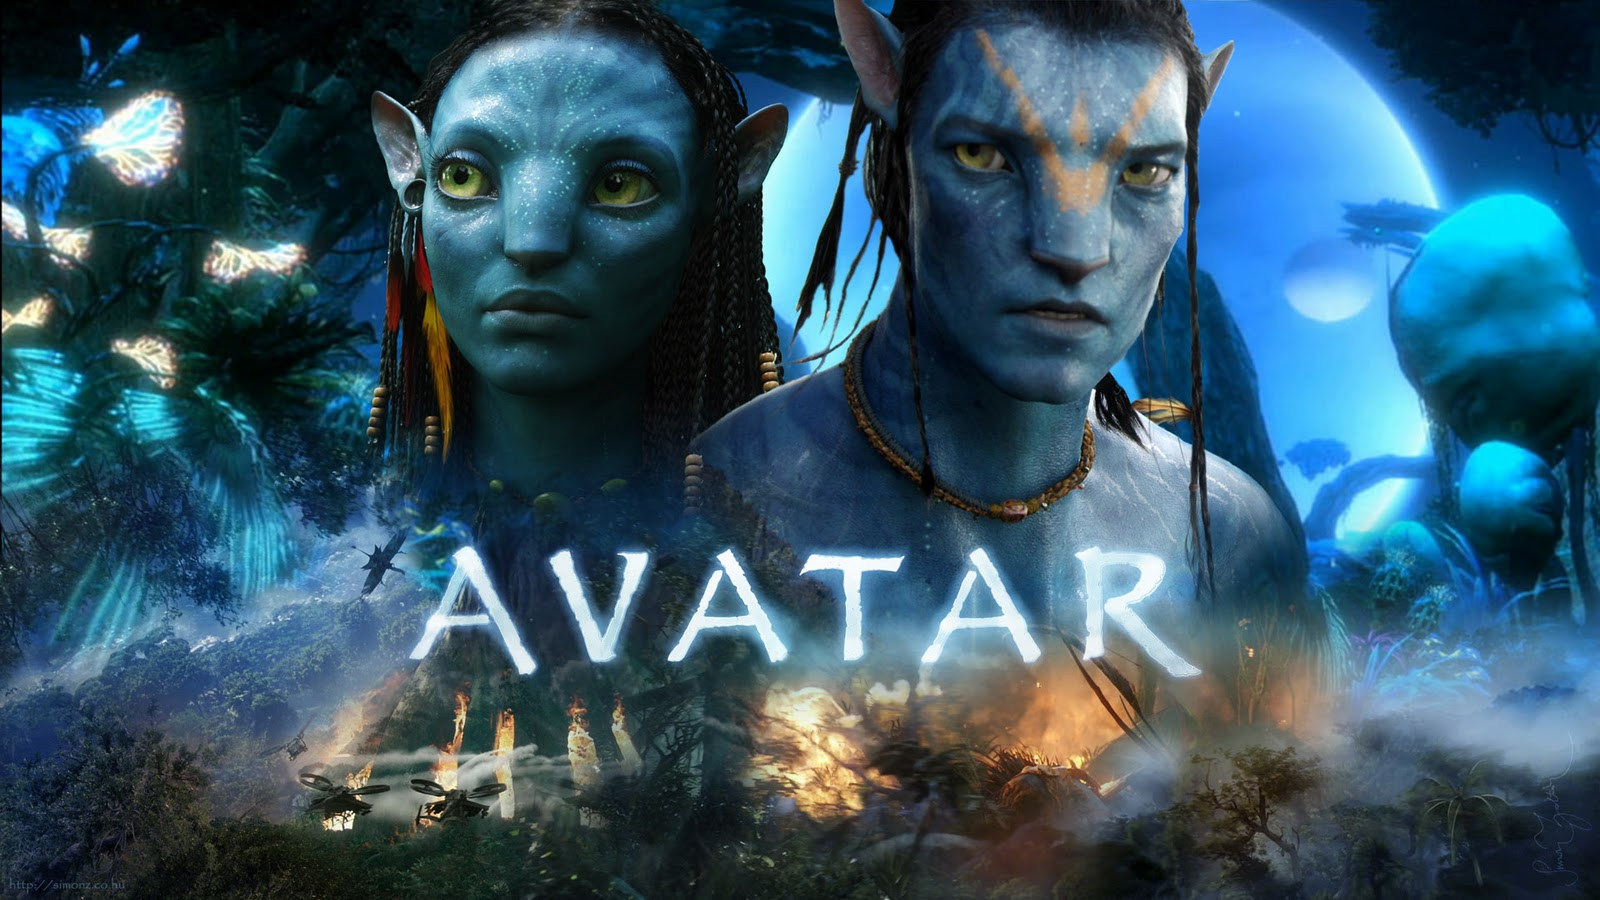 avatar movie poster 1920 x 1080 hd avatar movie hq: hdwallpapersstock.blogspot.com/2013/01/movies-hd-wallpapers.html